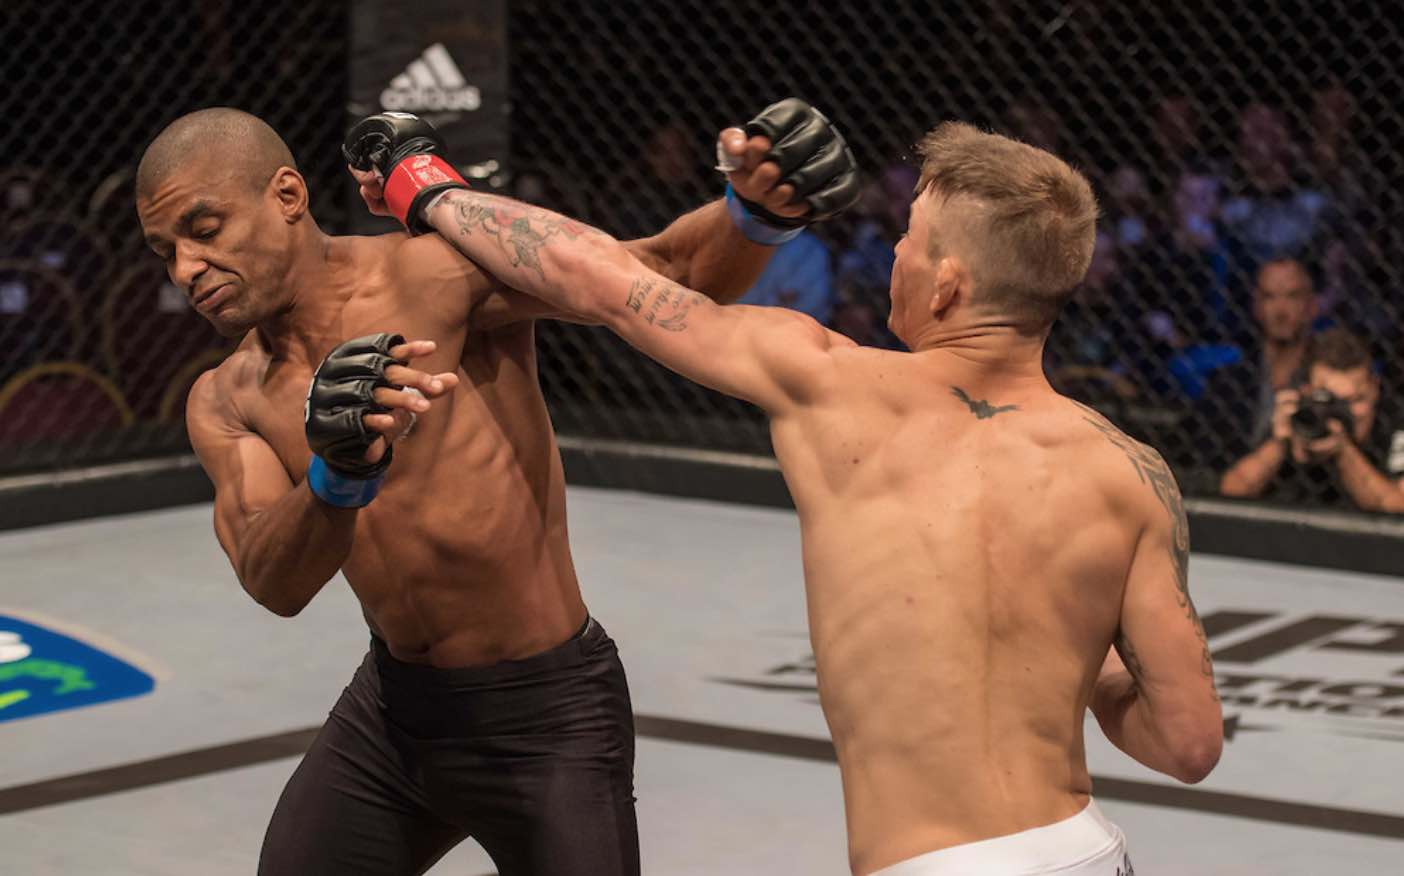 MMA fighters Yusuf Hassan and Devon Cronje take each other on at EFC 57